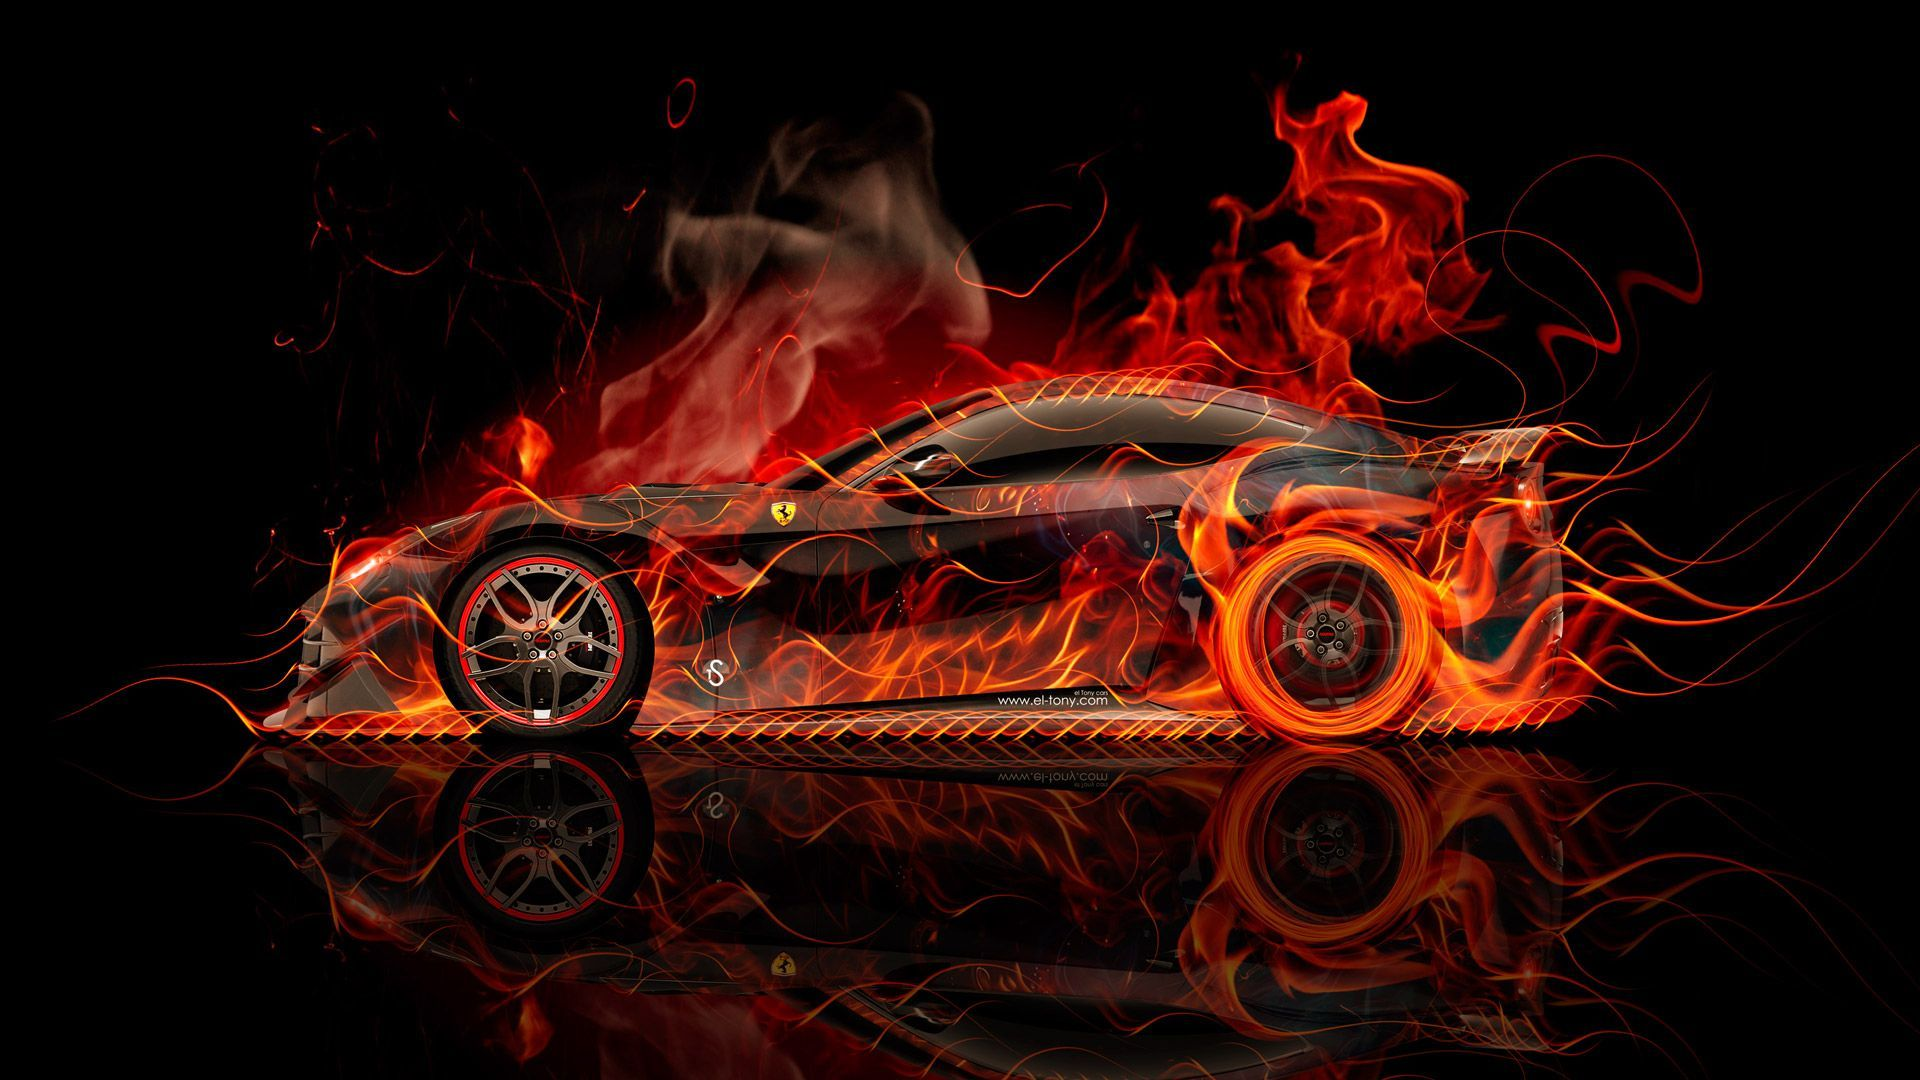 Etonnant Ferrari F12 Berlinetta Side Super Fire Abstract Car 2015 « El Tony